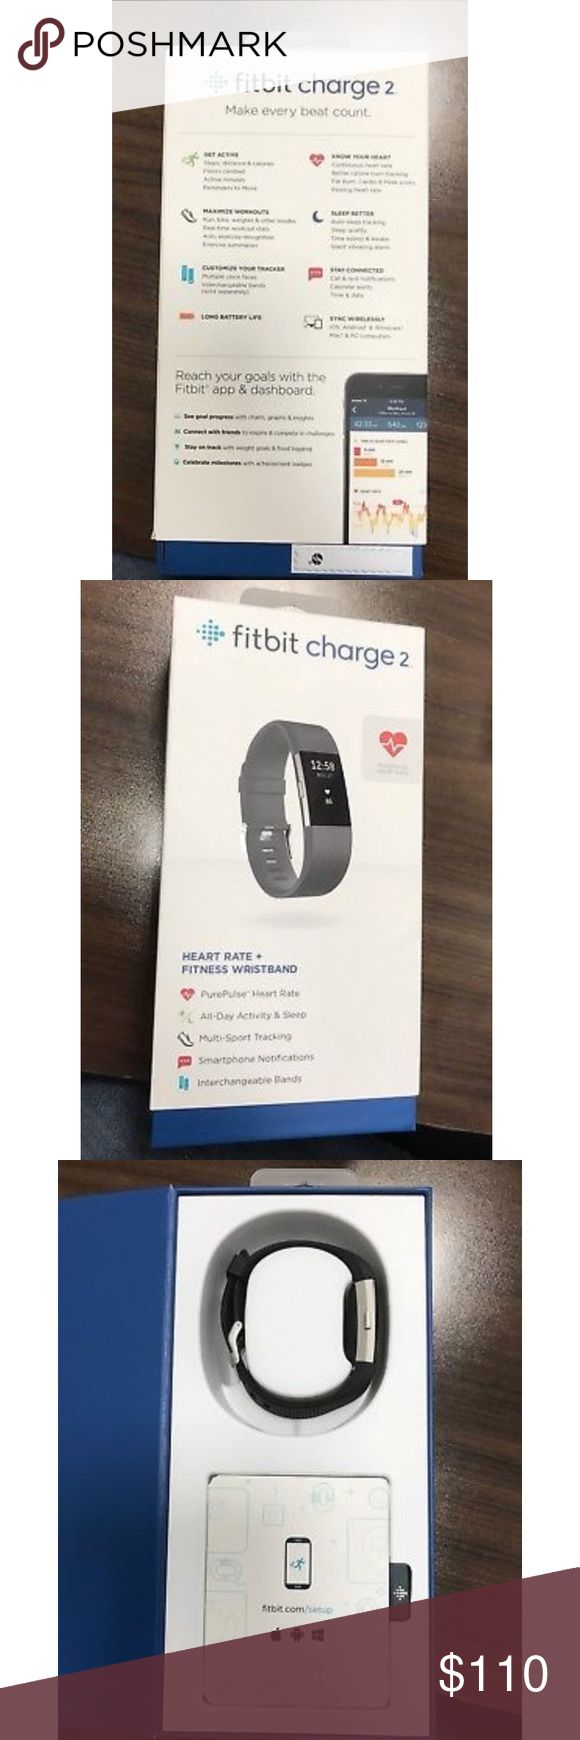 Fitbit Charge 2 - Used for 4 months. Purchased at Best Buy in June 2017 for $149. Size small. Other